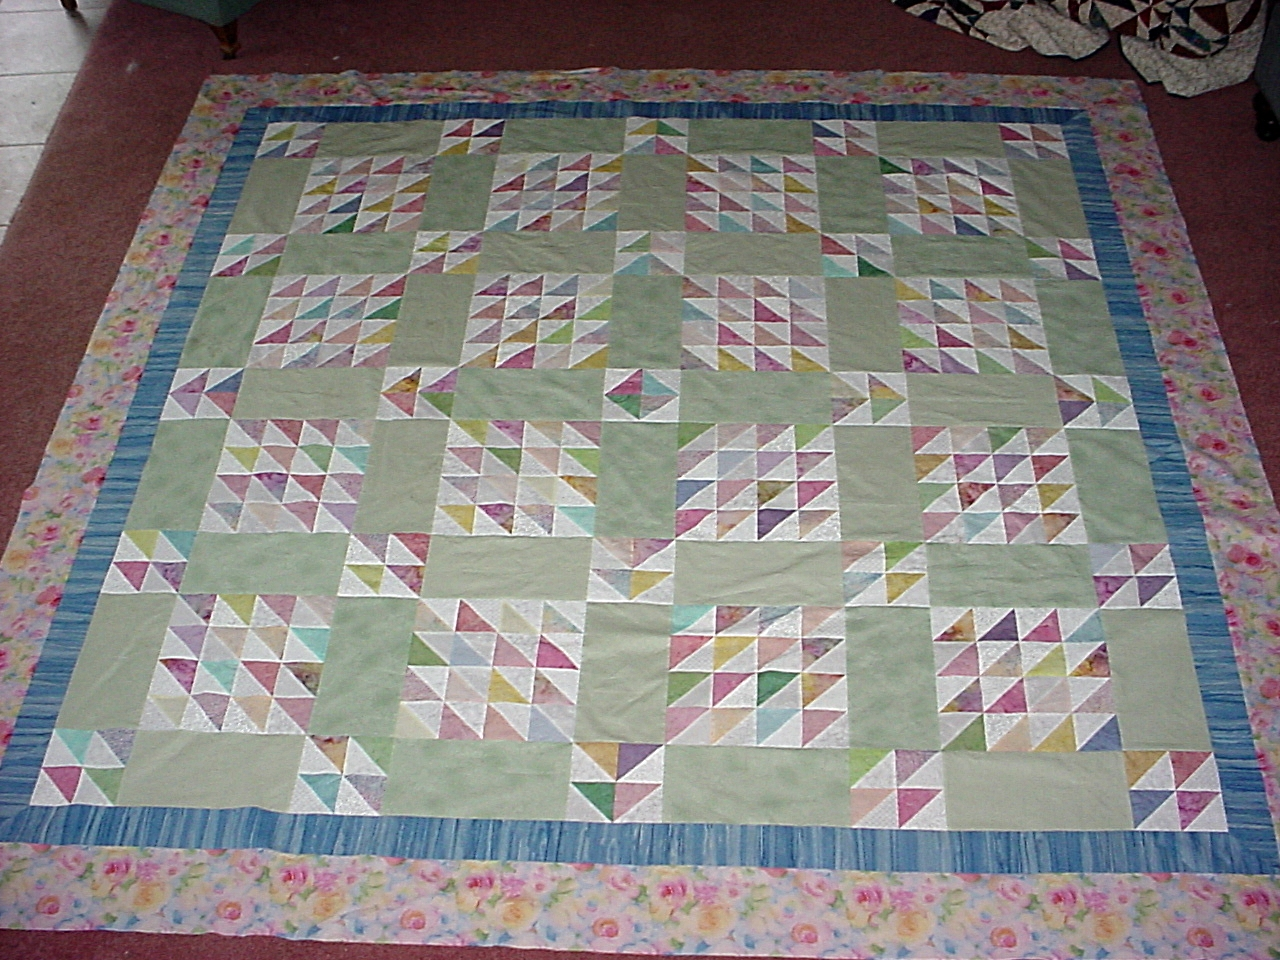 The quilt top is complete